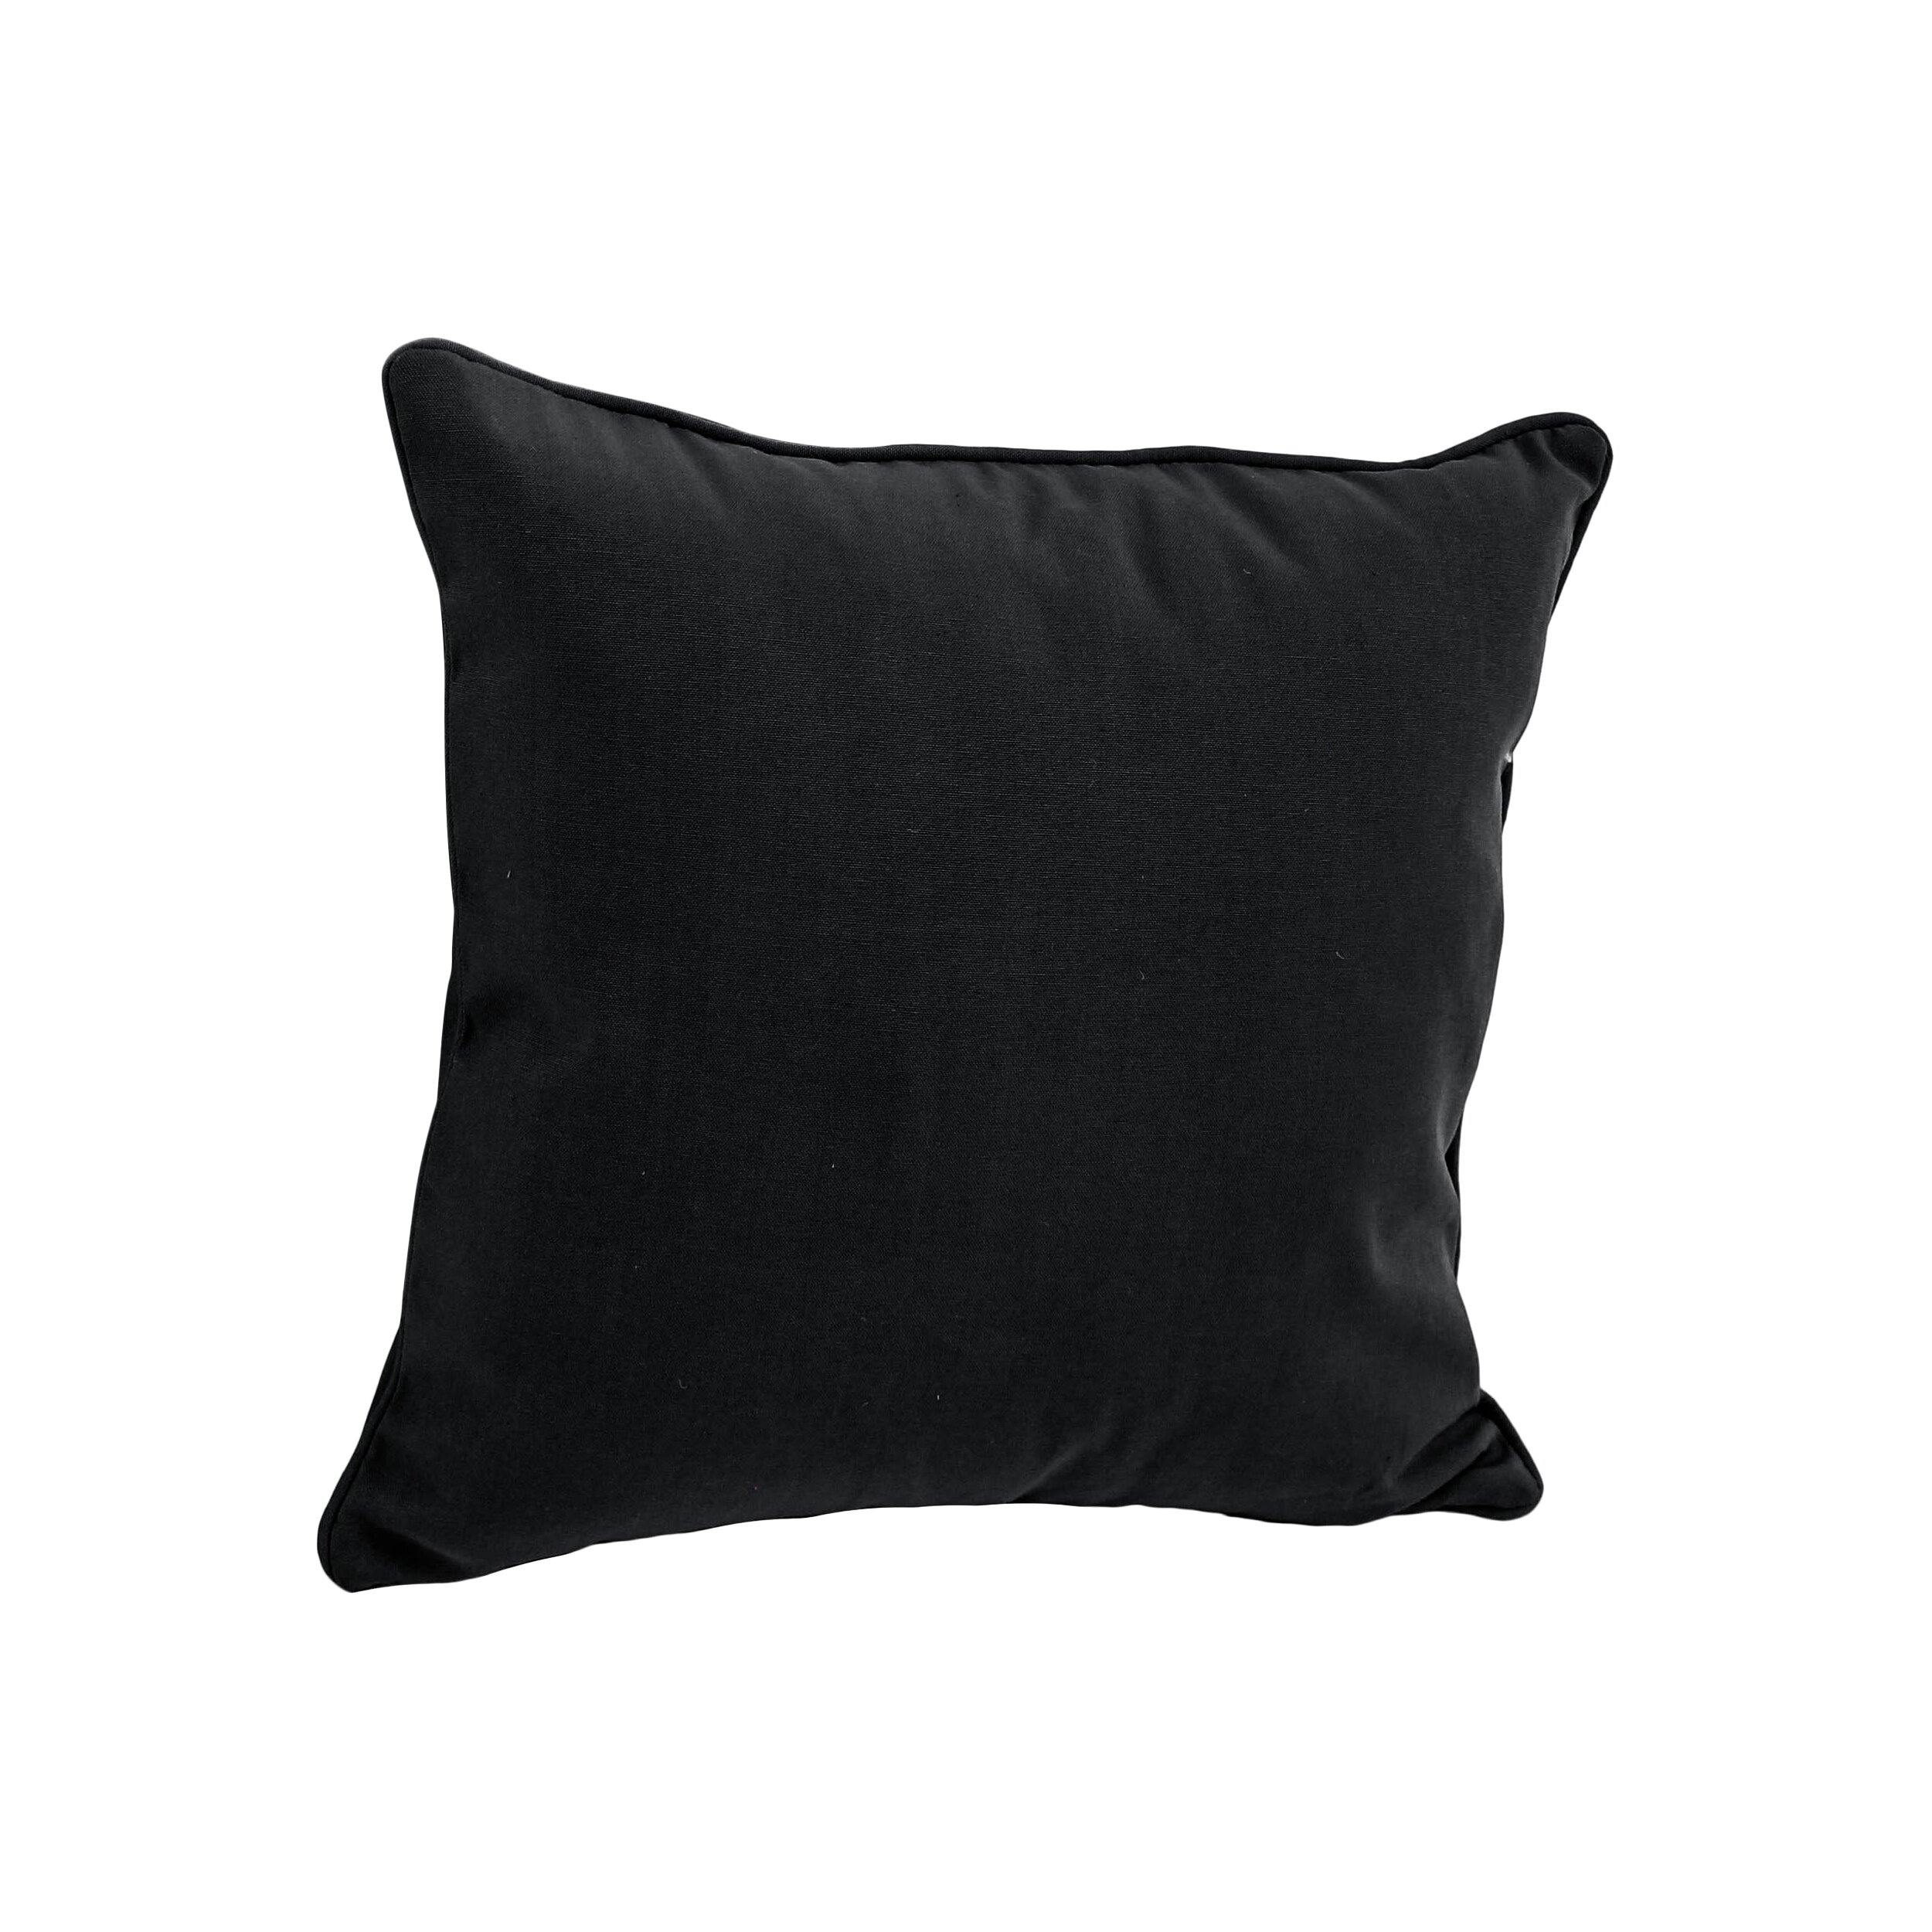 Solid Black Throw Pillows : Andover Mills Weymouth Solid Throw Pillow & Reviews Wayfair